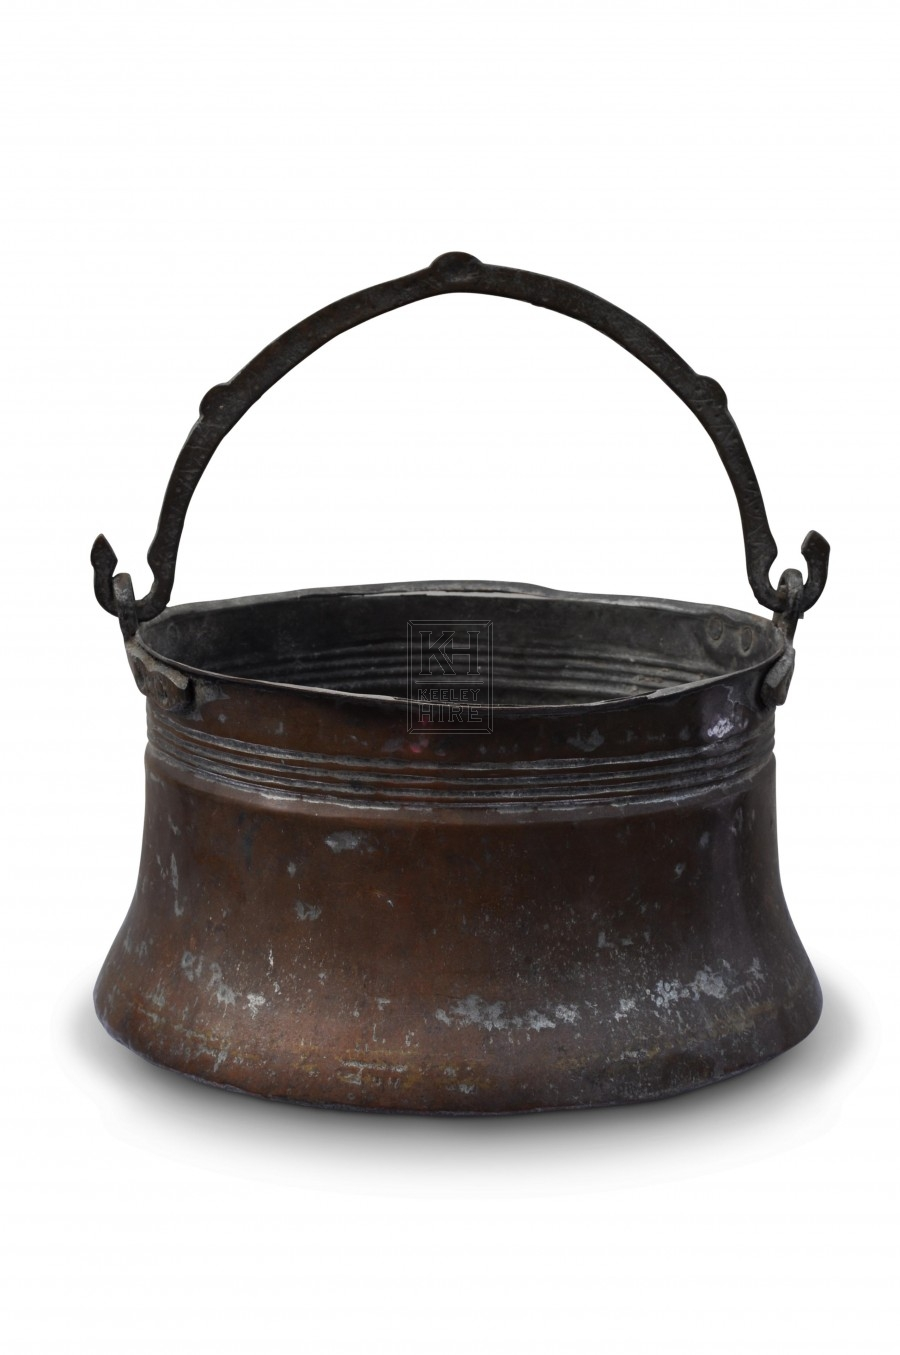 Copper Cooking Pot with convex sides